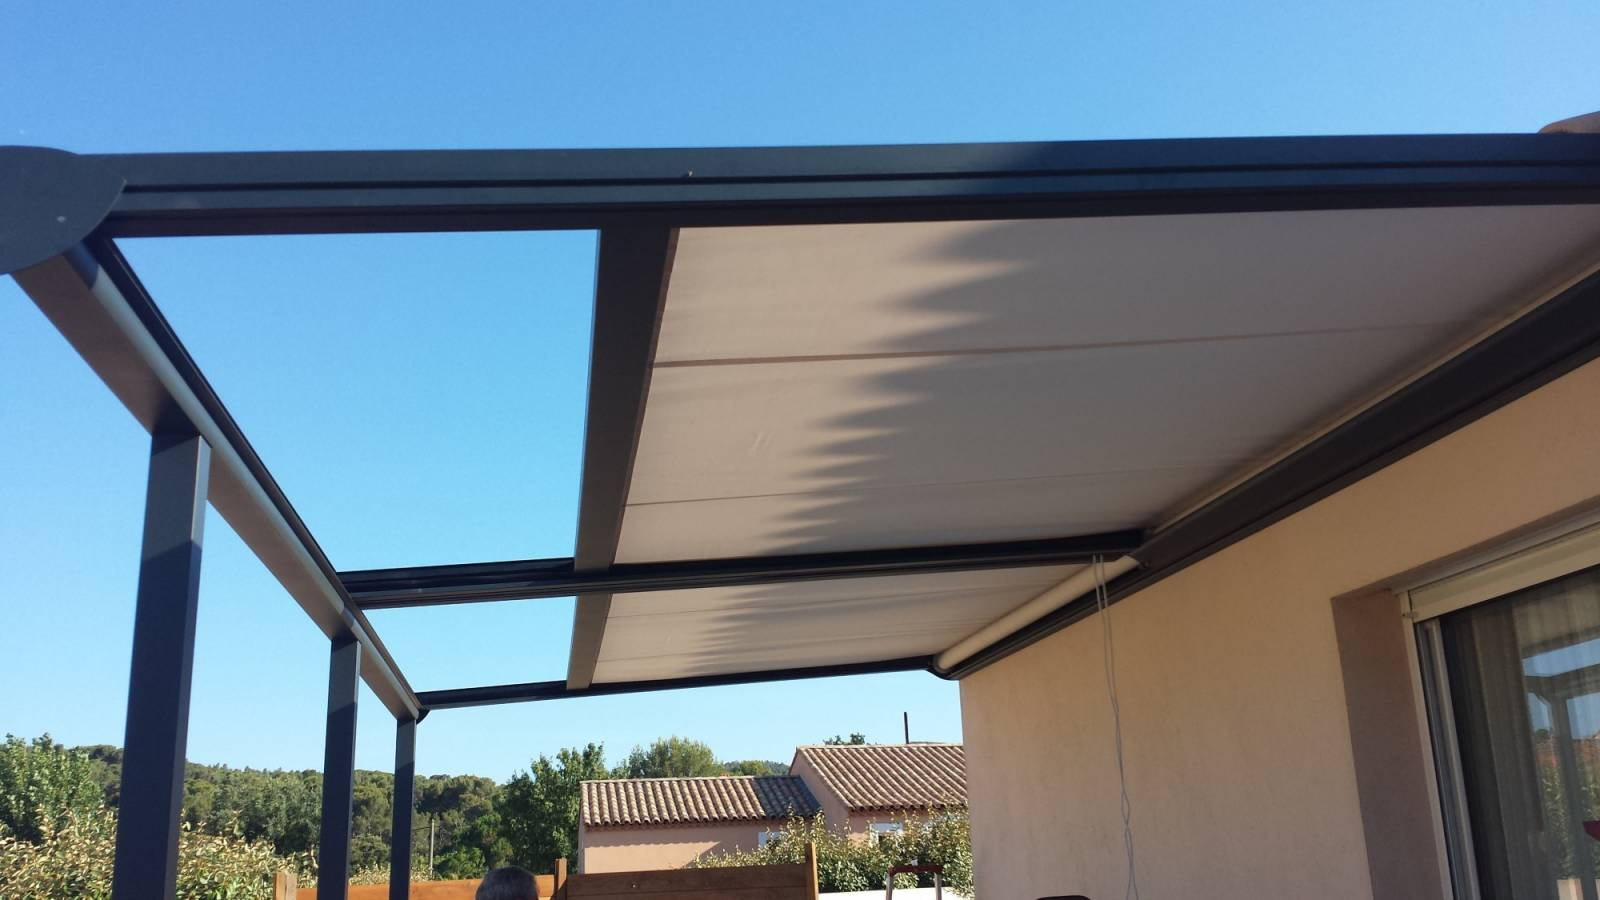 Pergolas toile r tractable marseille marseille grand - Pergola alu toile retractable ...